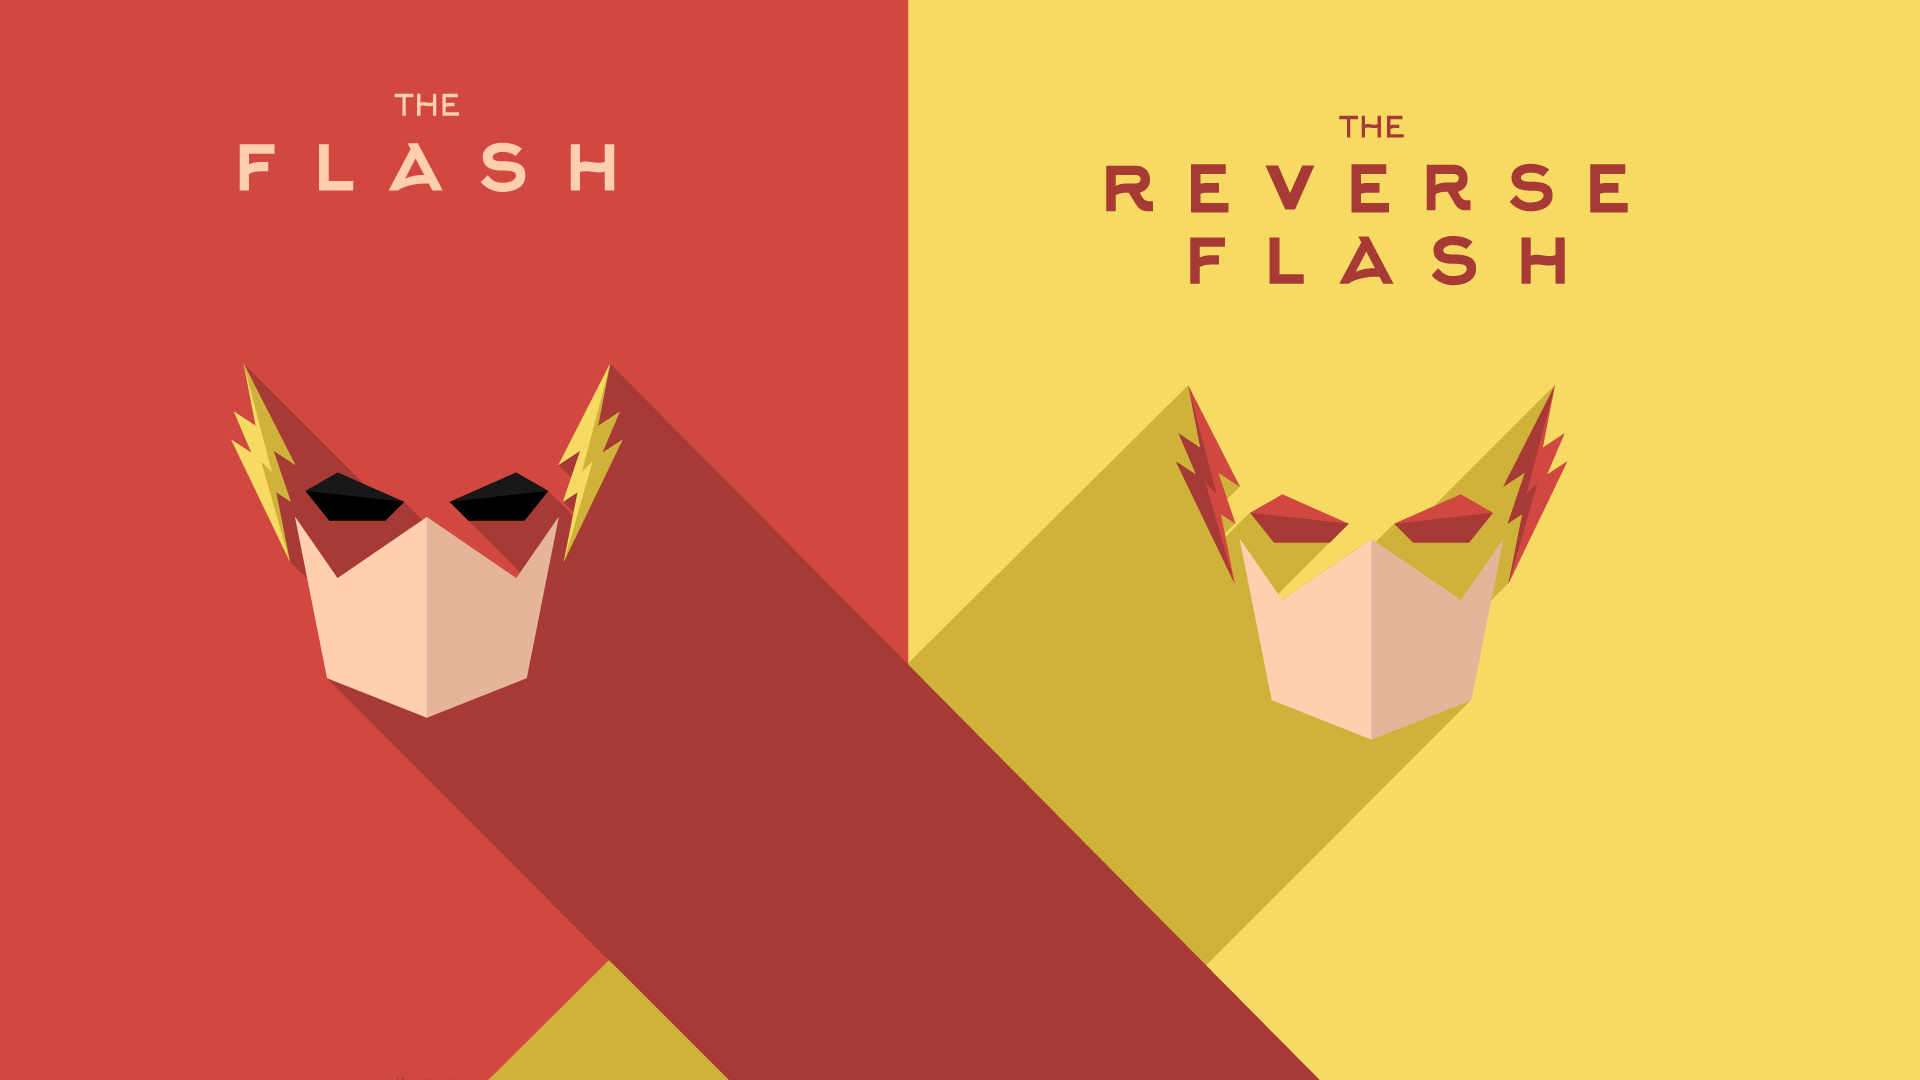 the flash wallpaper 1920×1080 11 | the flash | pinterest | flash